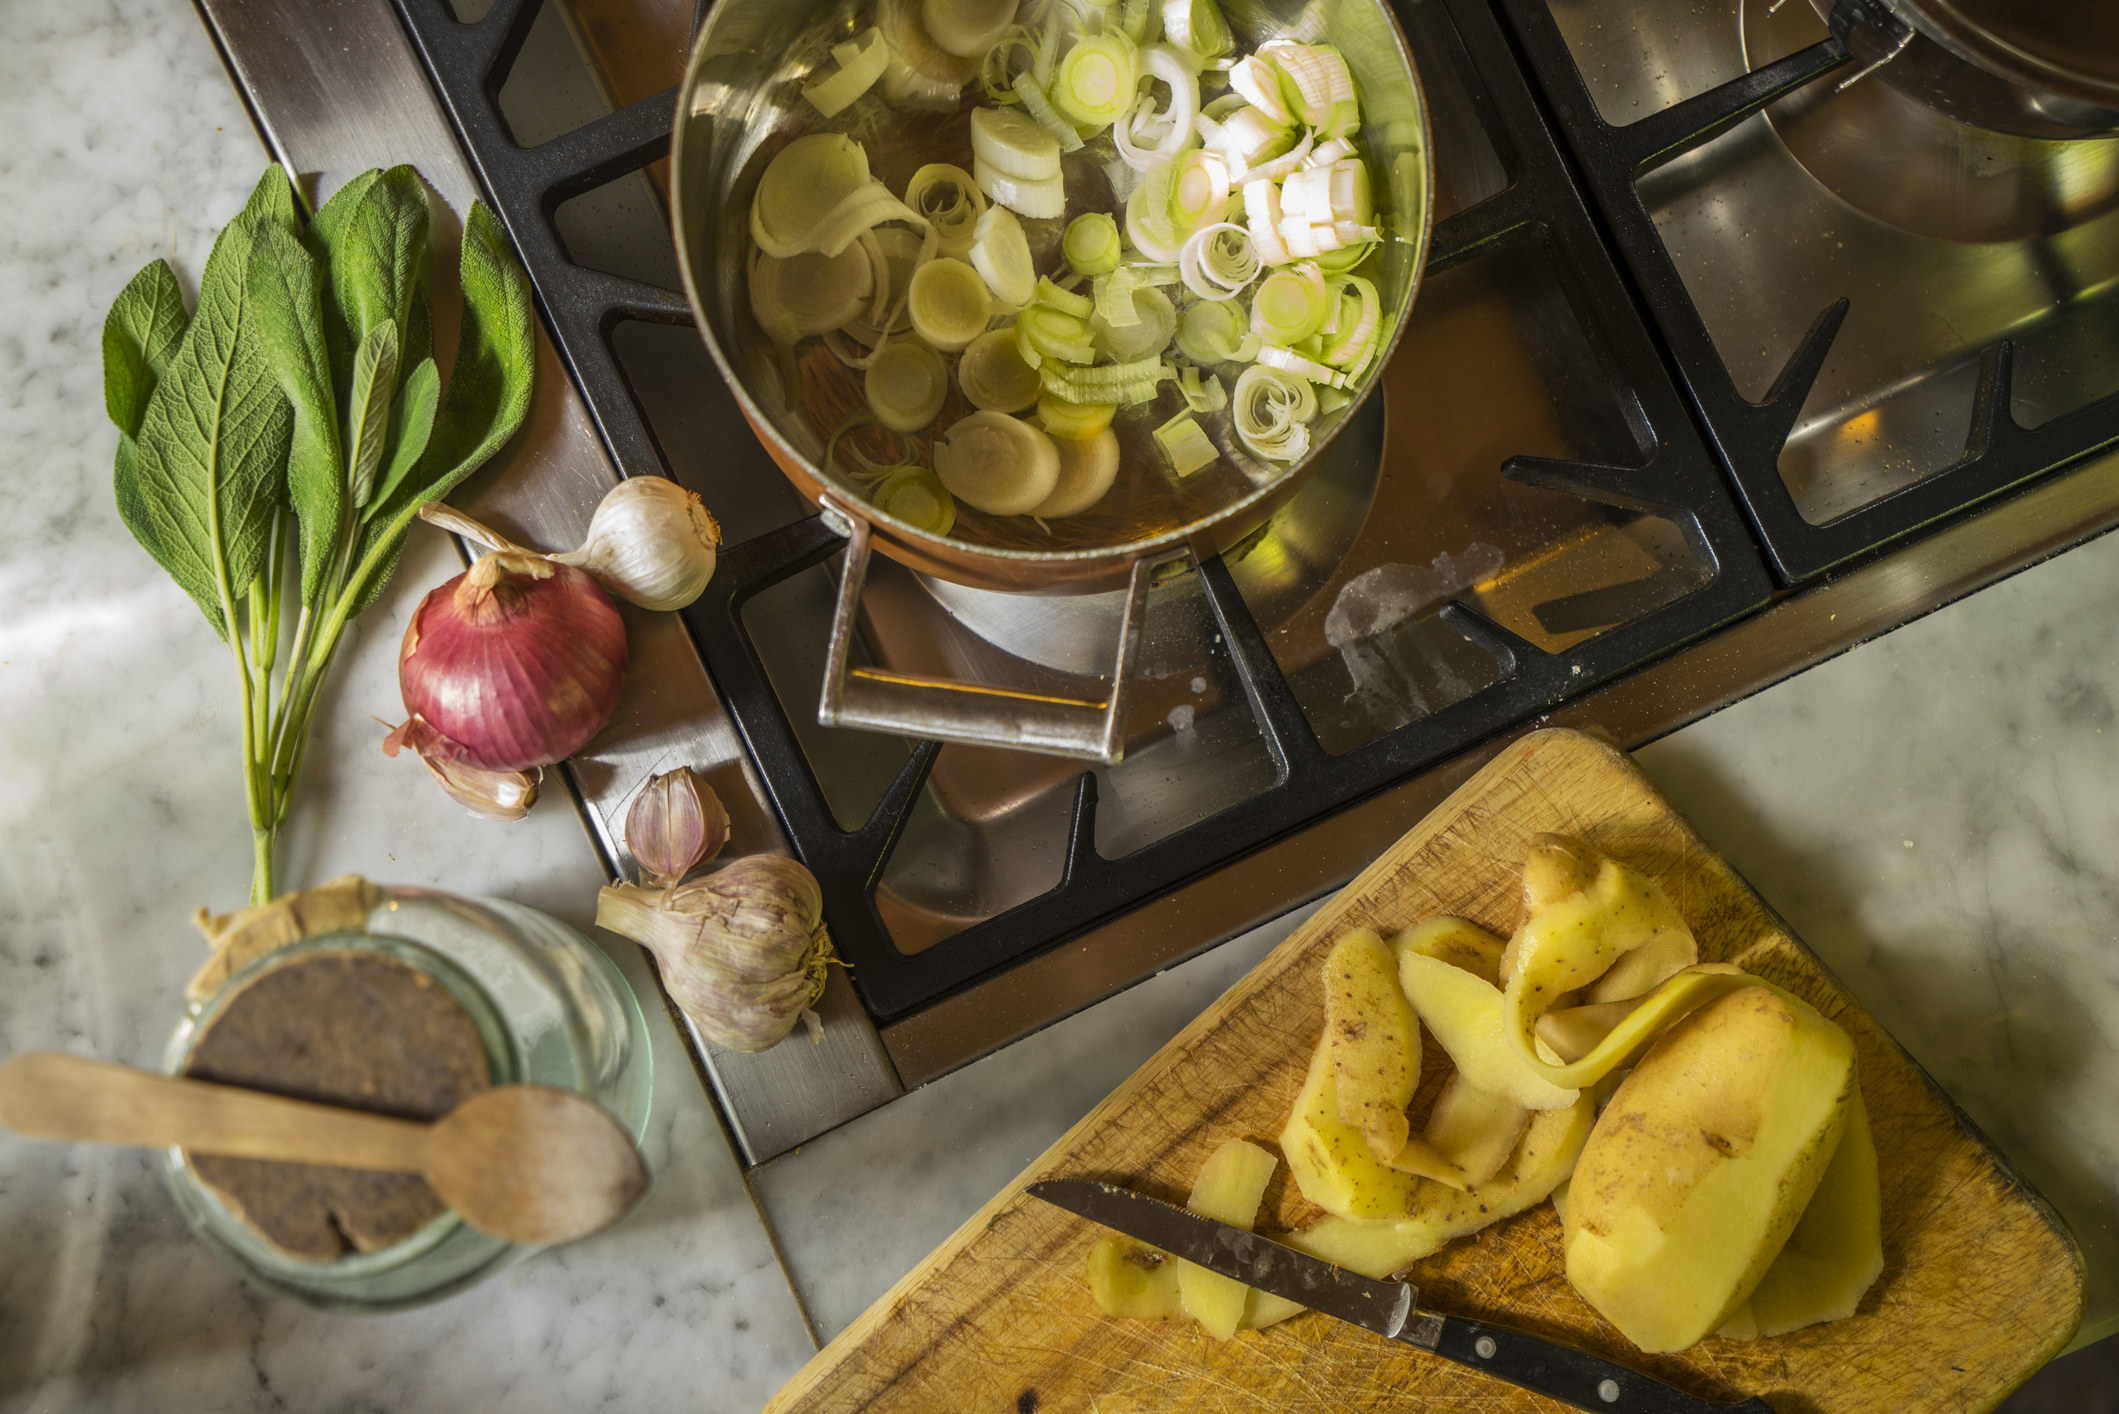 Cooking leeks and potatoes on the stovetop.